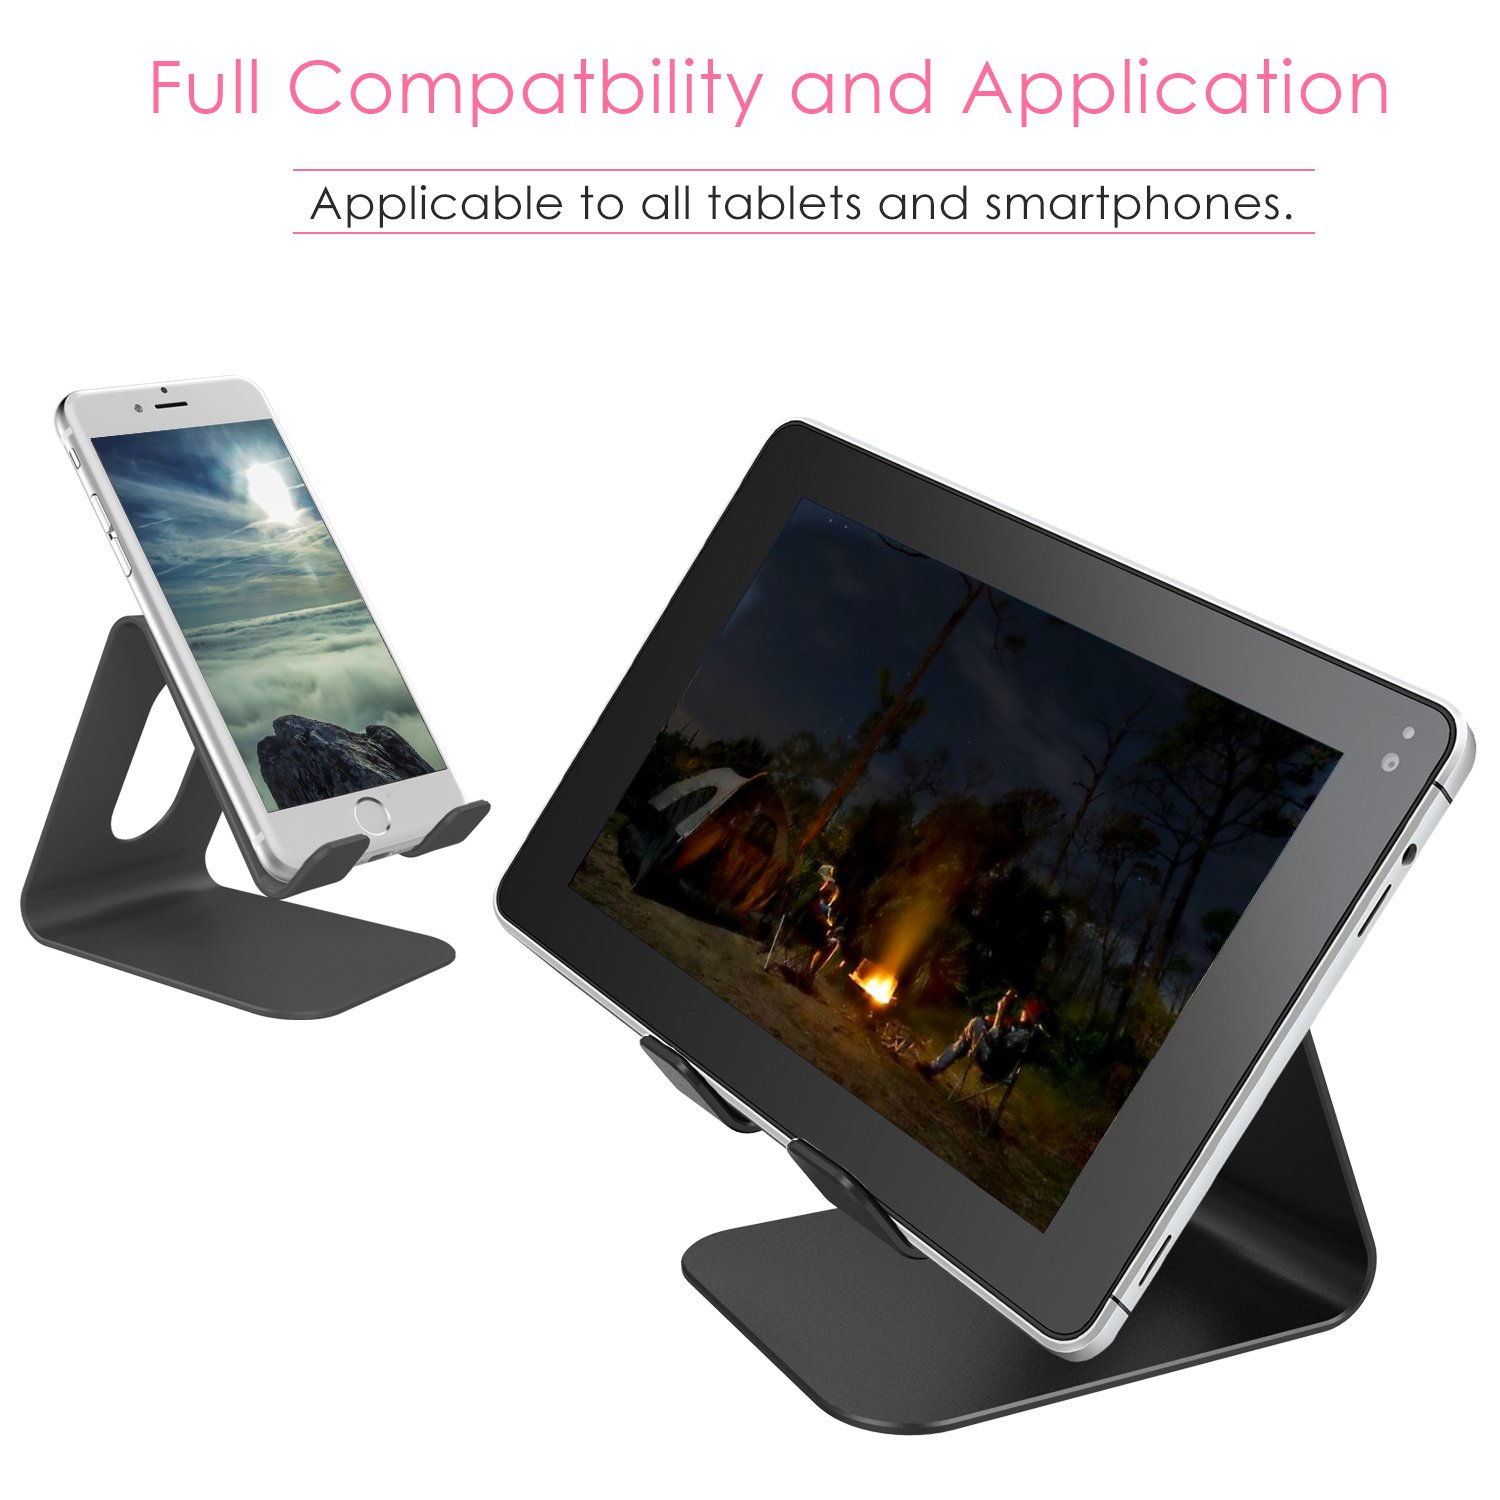 ifecco Cell Phone Stand, Mobile Phone Holder for Tablet All Android Smartphones, iPhone 7 Plus iPad (Upgrade Black)